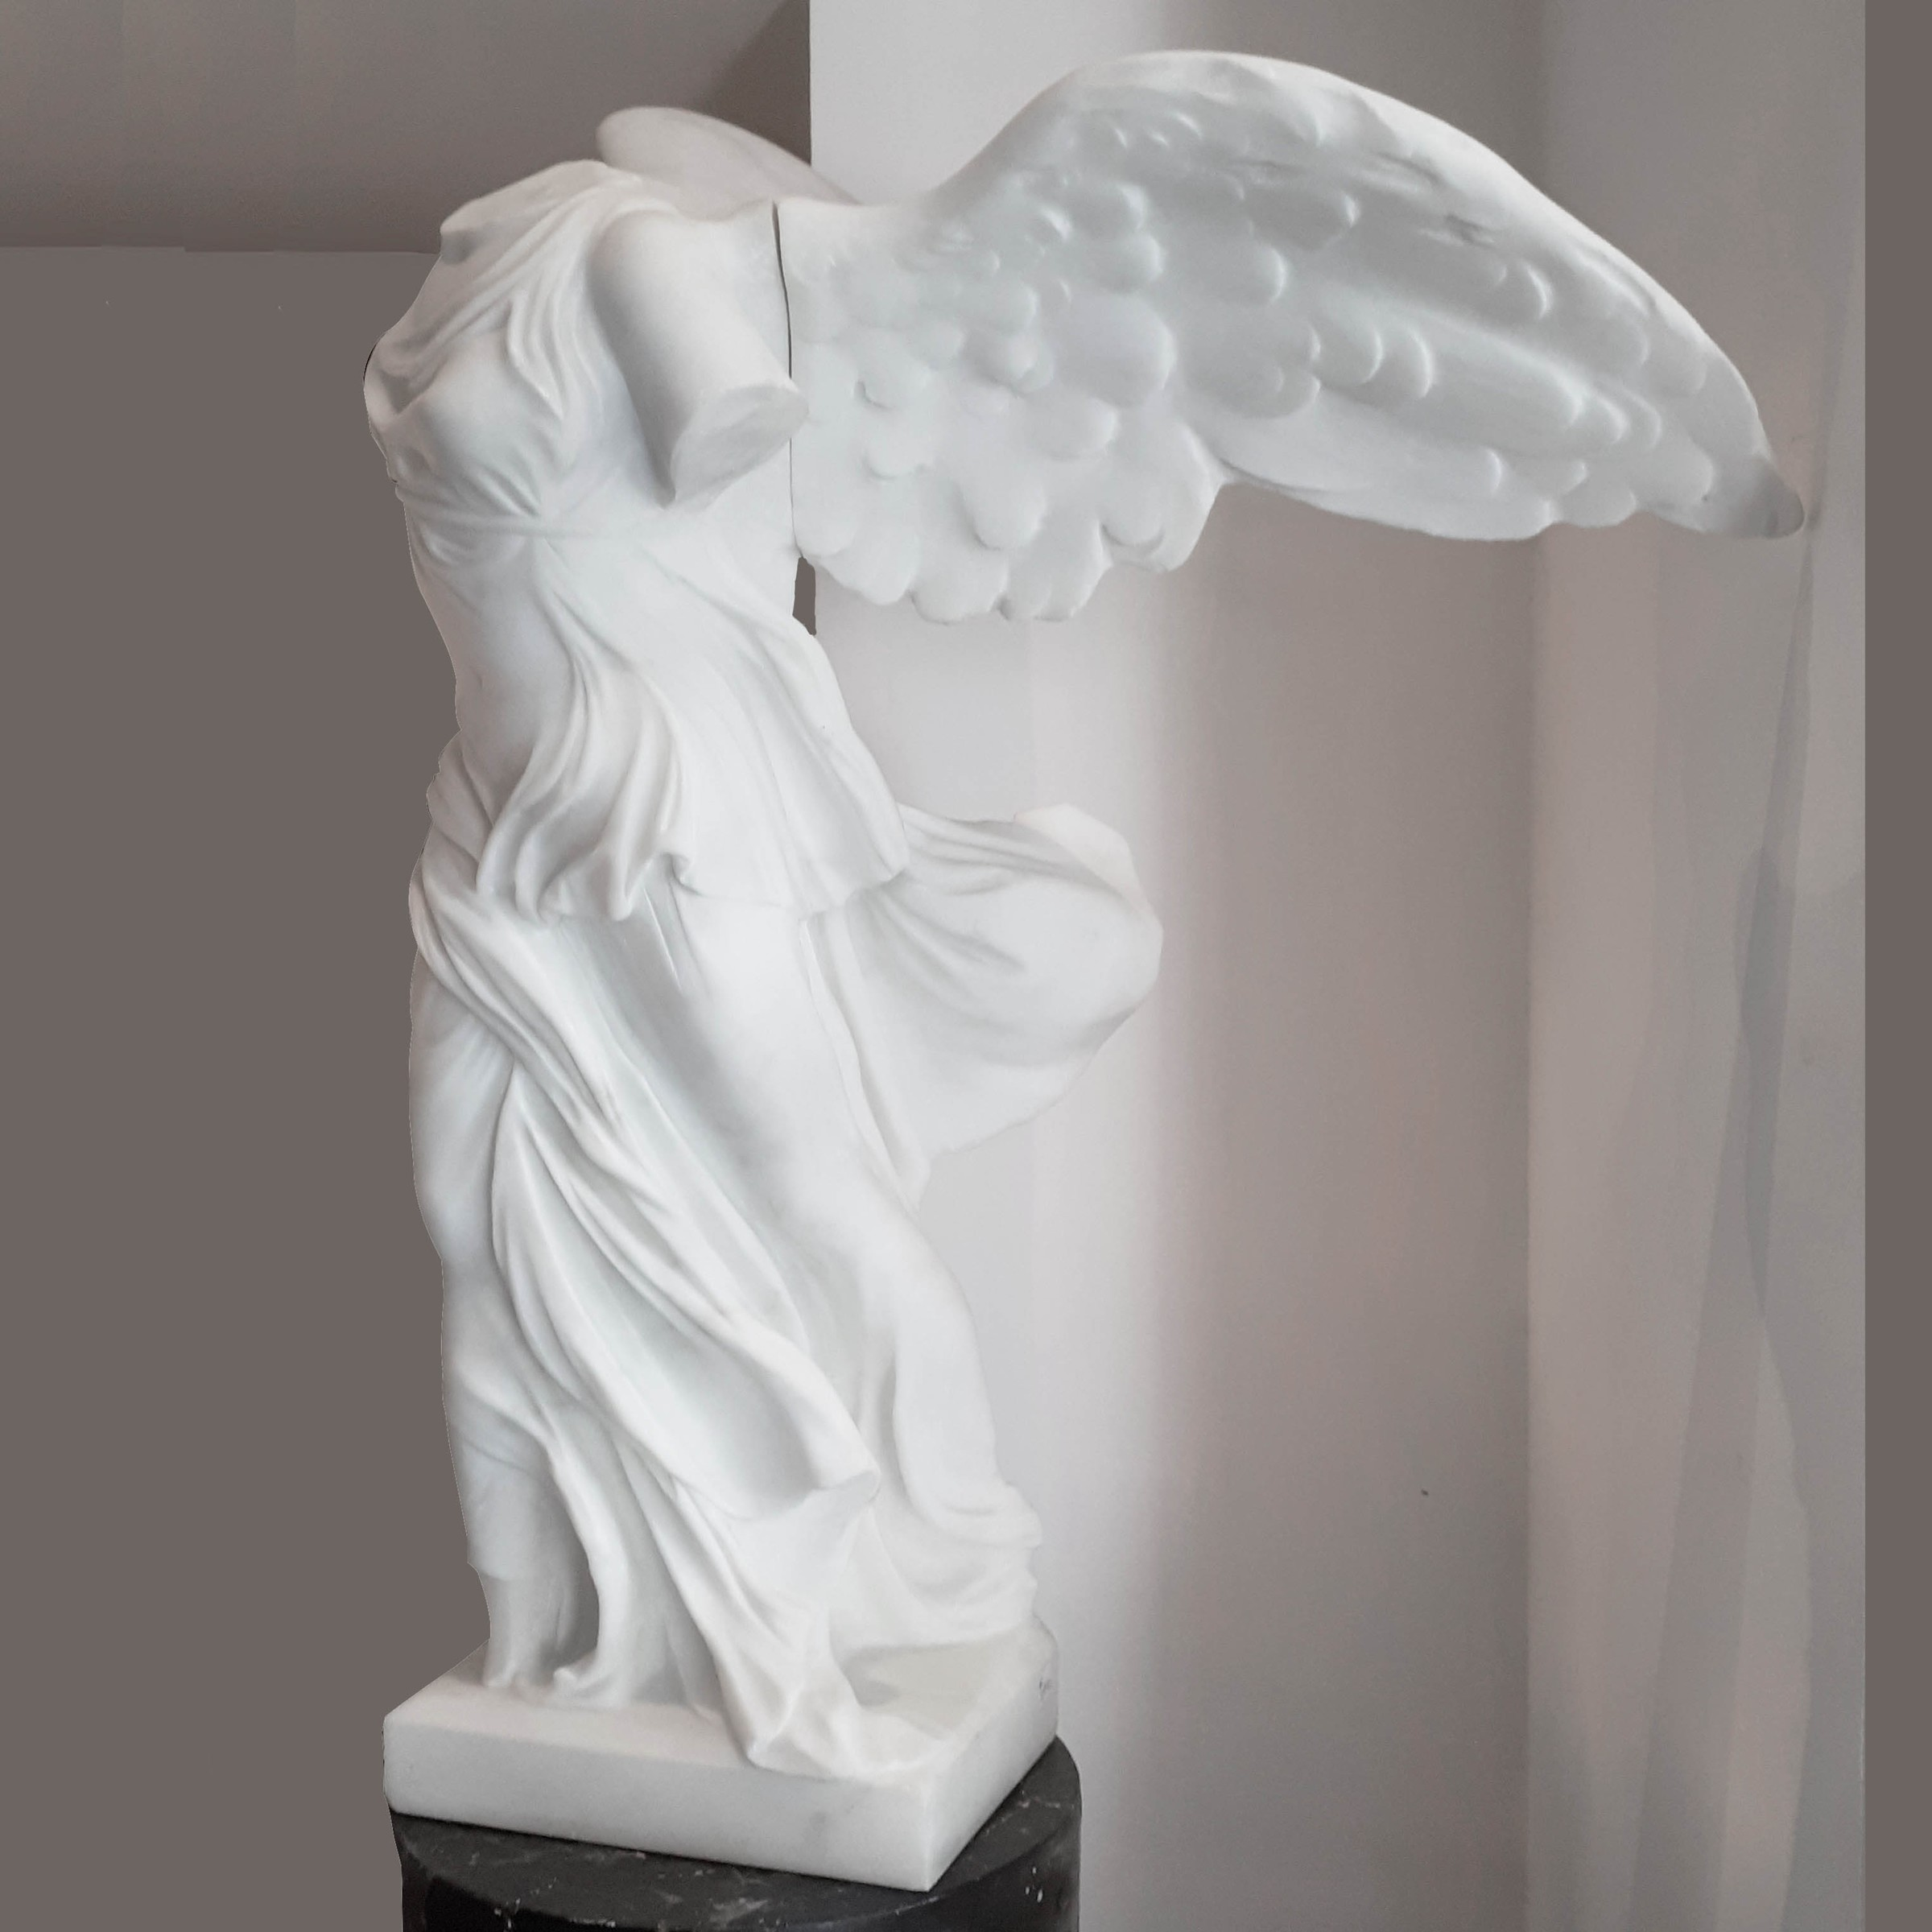 Late 19th century statue of the Winged Victory of Samothrace